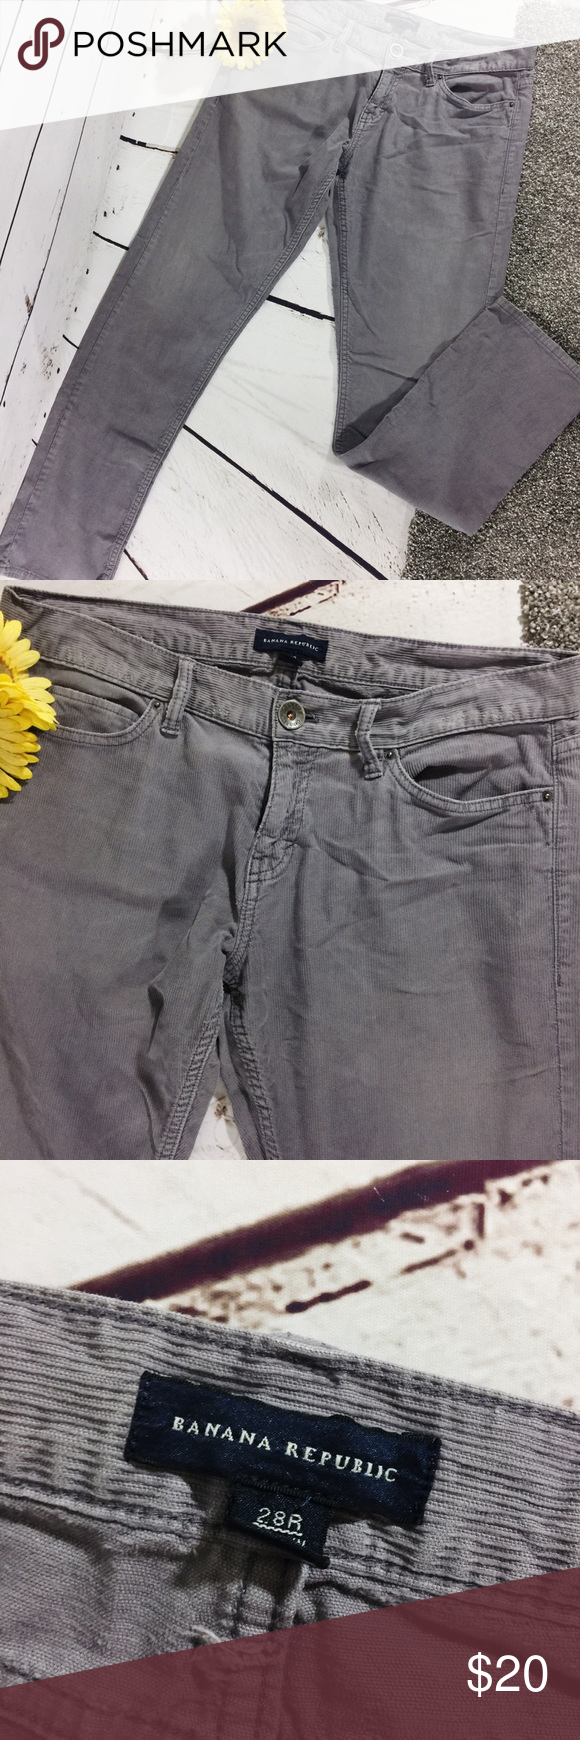 """{BANANA REPUBLIC} Grey Corduroy Straight Leg Pants Grey corduroy Straight Leg Pants by Banana Republic .  Wear shown on waistband but otherwise good preowned condition .  All measurements taken flat .  Size 28 regular measures 30"""" Inseam , 8.5"""" rise , 16"""" waistband .  Q-6 Banana Republic Pants Straight Leg"""